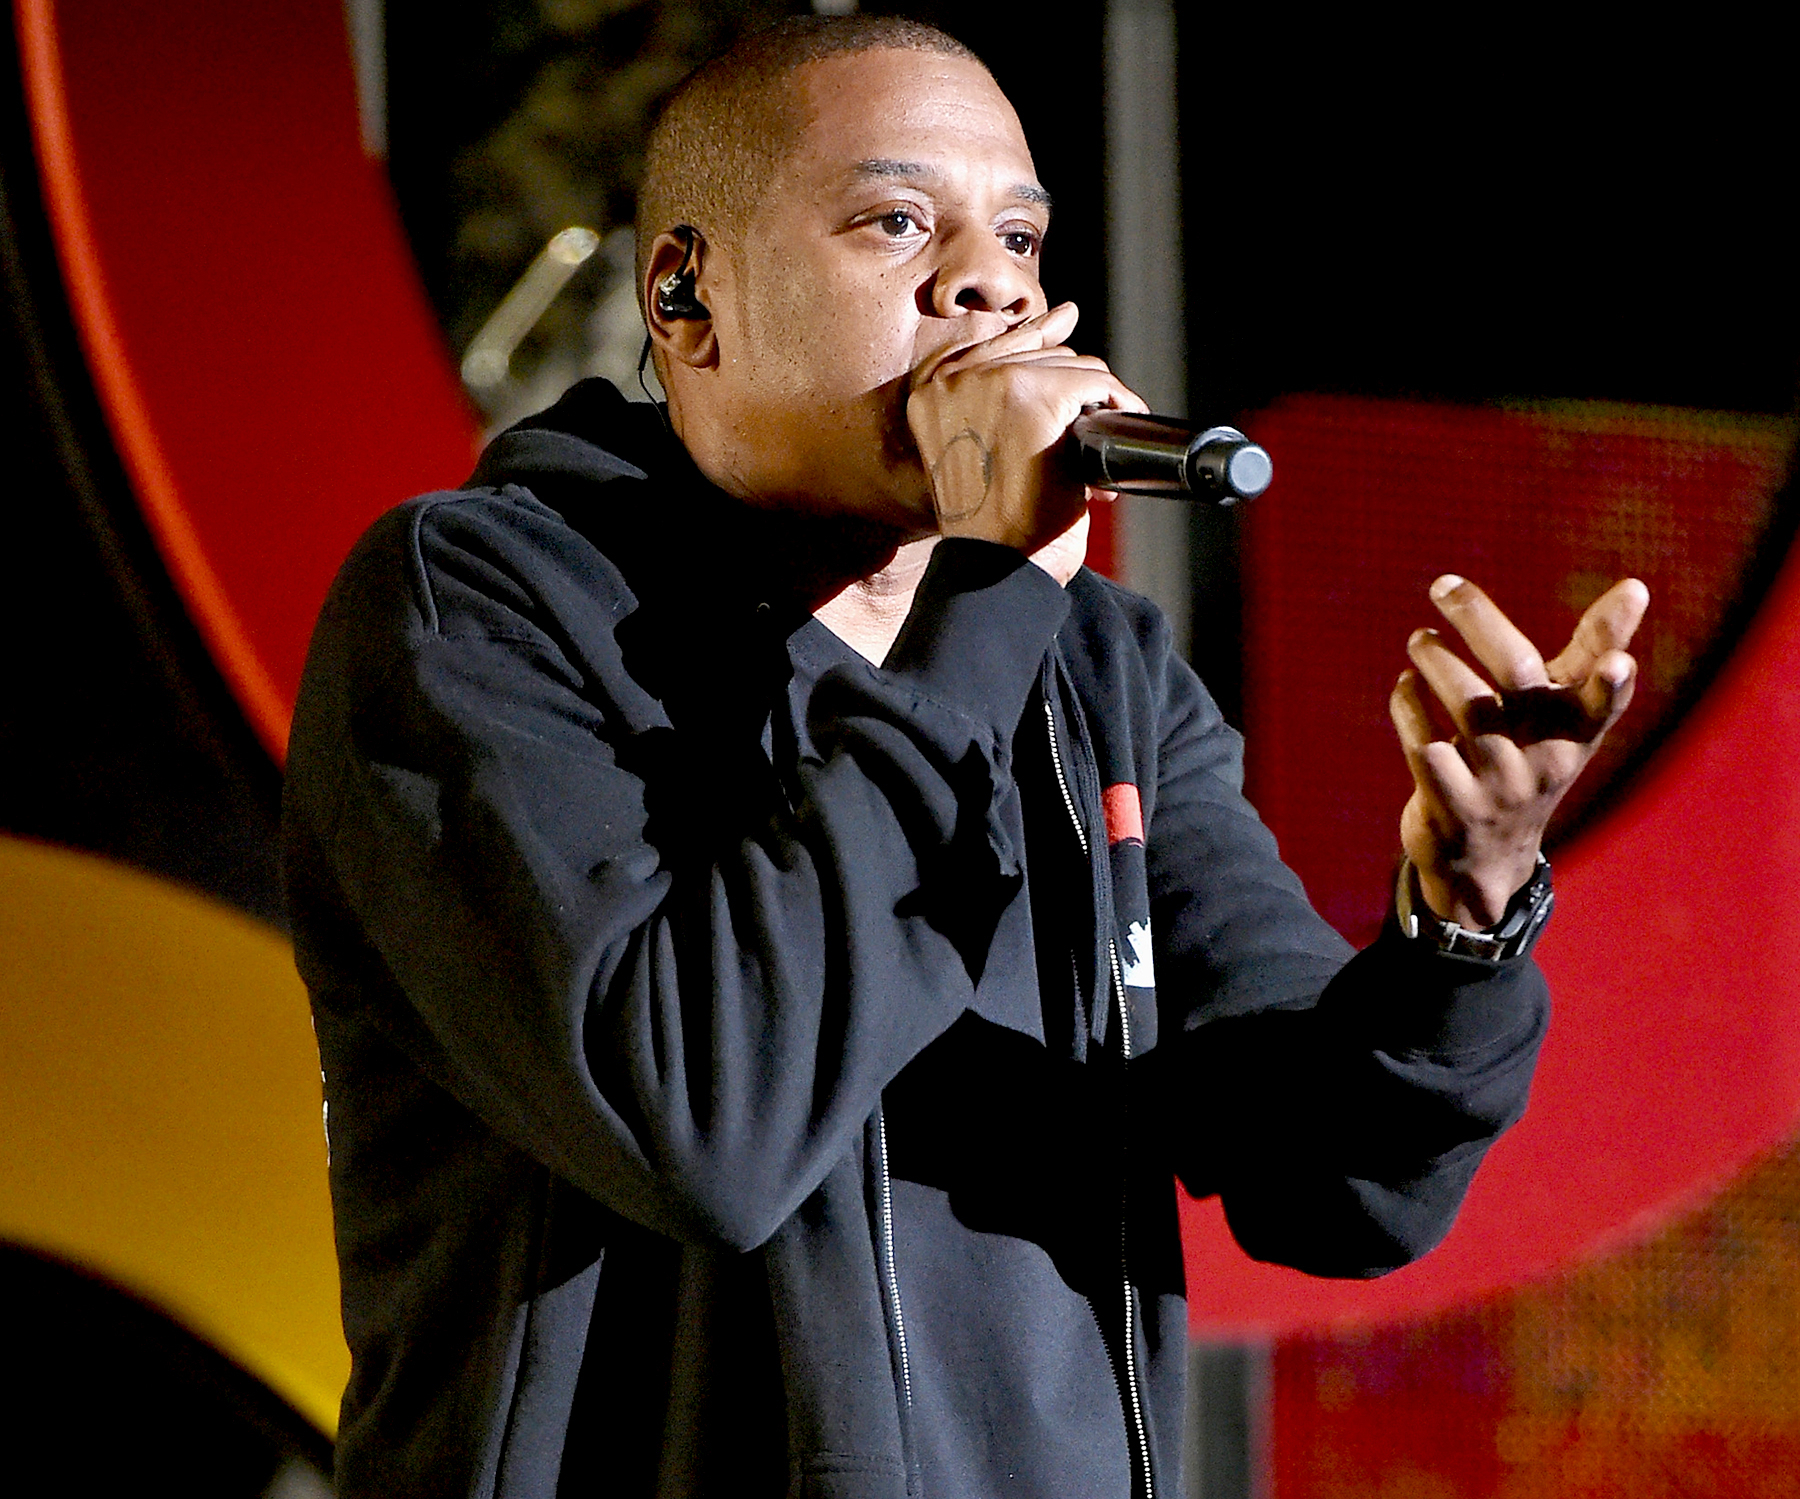 Jay Z performs onstage at the 2014 Global Citizen Festival to end extreme poverty by 2030 in Central Park on September 27, 2014 in New York City.